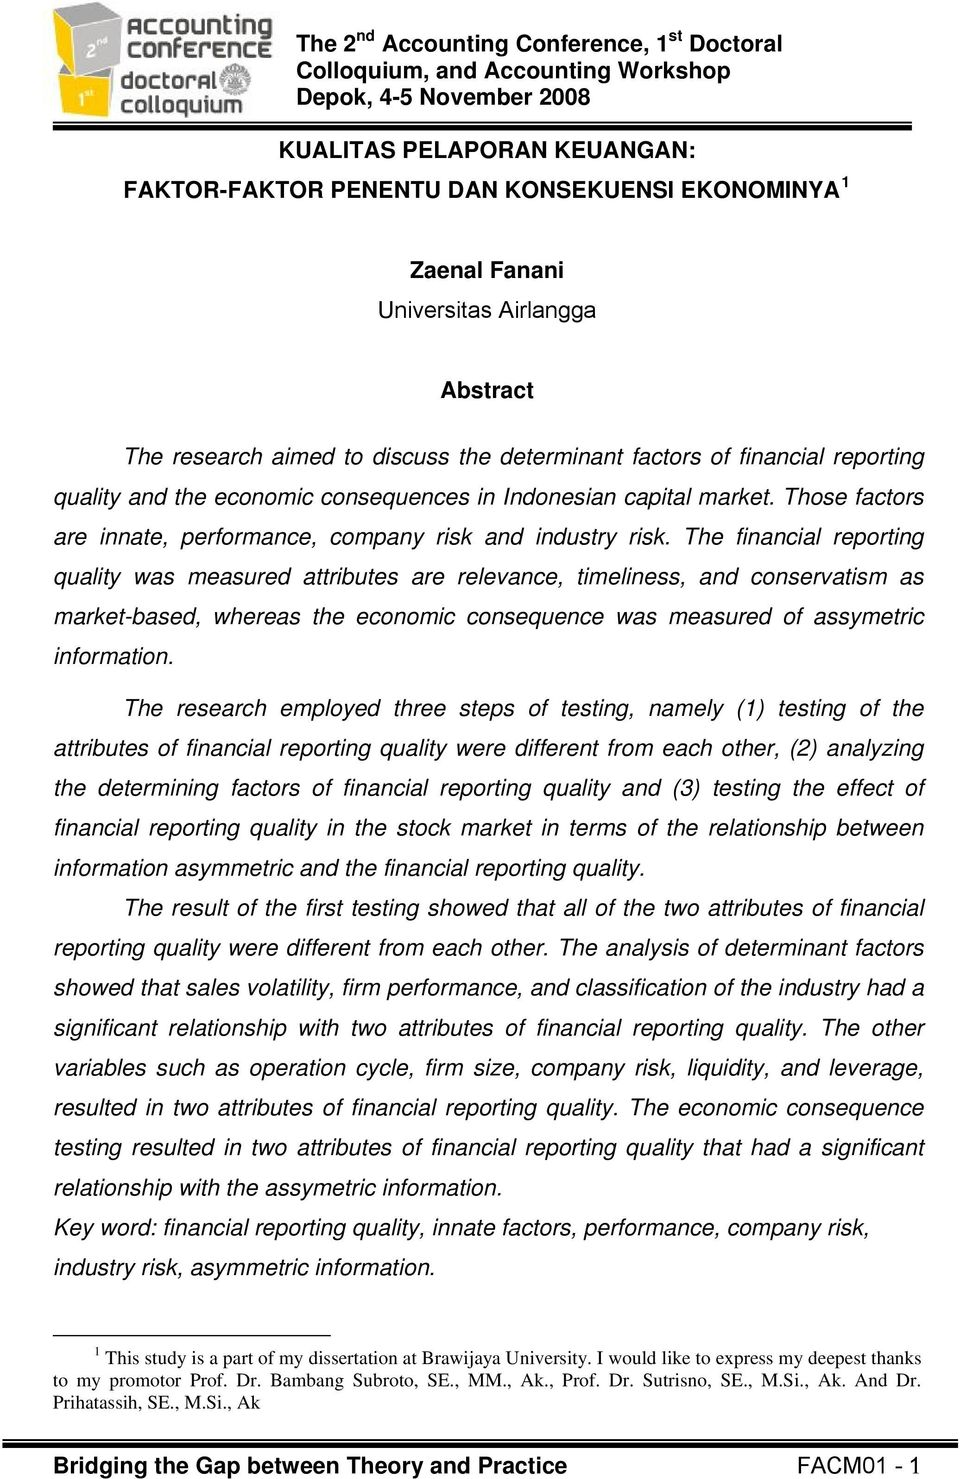 The financial reporting quality was measured attributes are relevance, timeliness, and conservatism as market-based, whereas the economic consequence was measured of assymetric information.